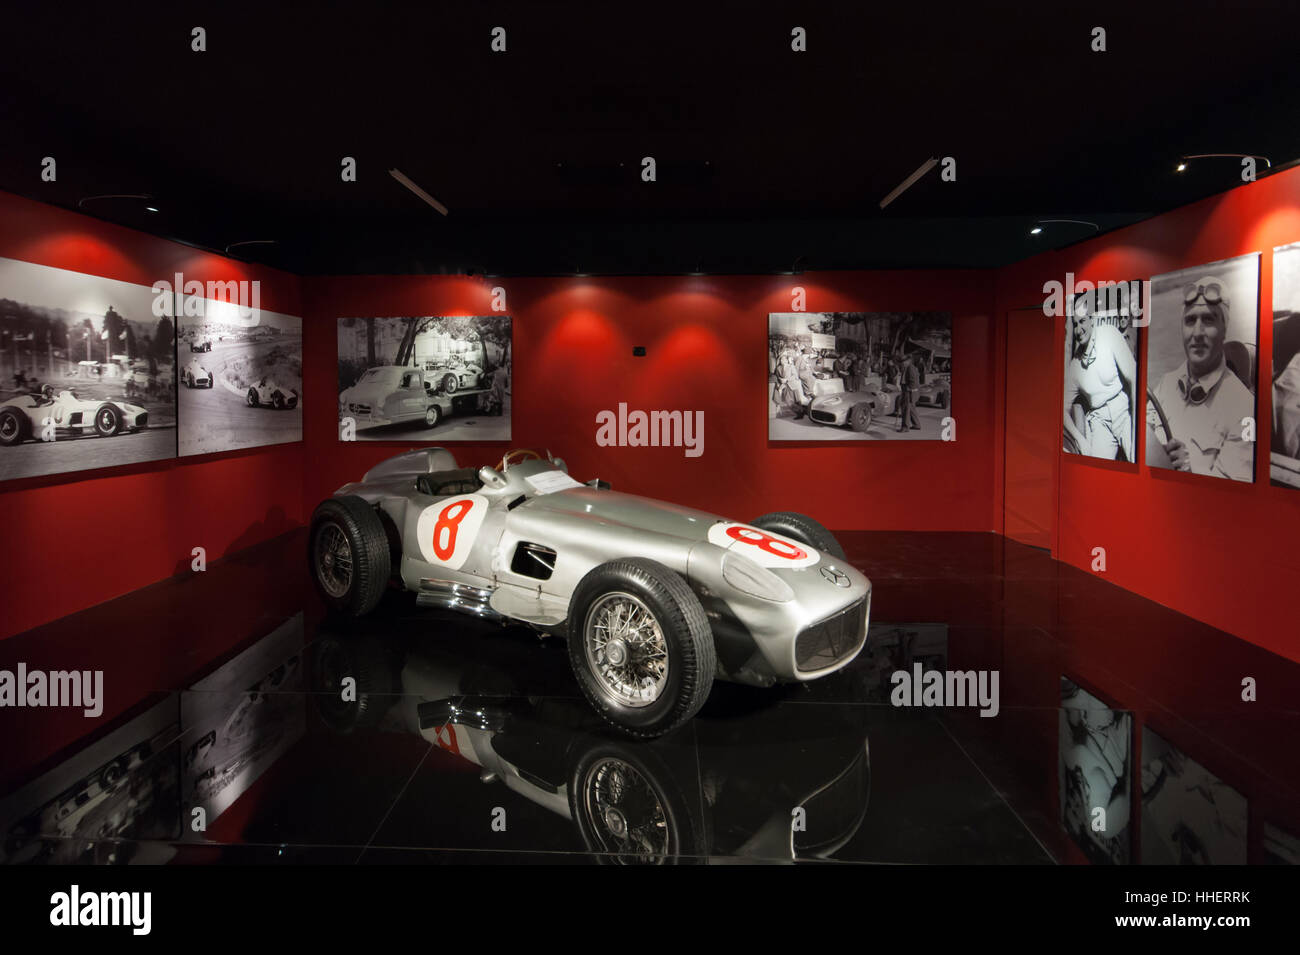 A vintage 1954 F1 race car Mercedes Benz RW 196  pictured at the National automobile Museum in Turin Inexhibit magazine - Stock Image